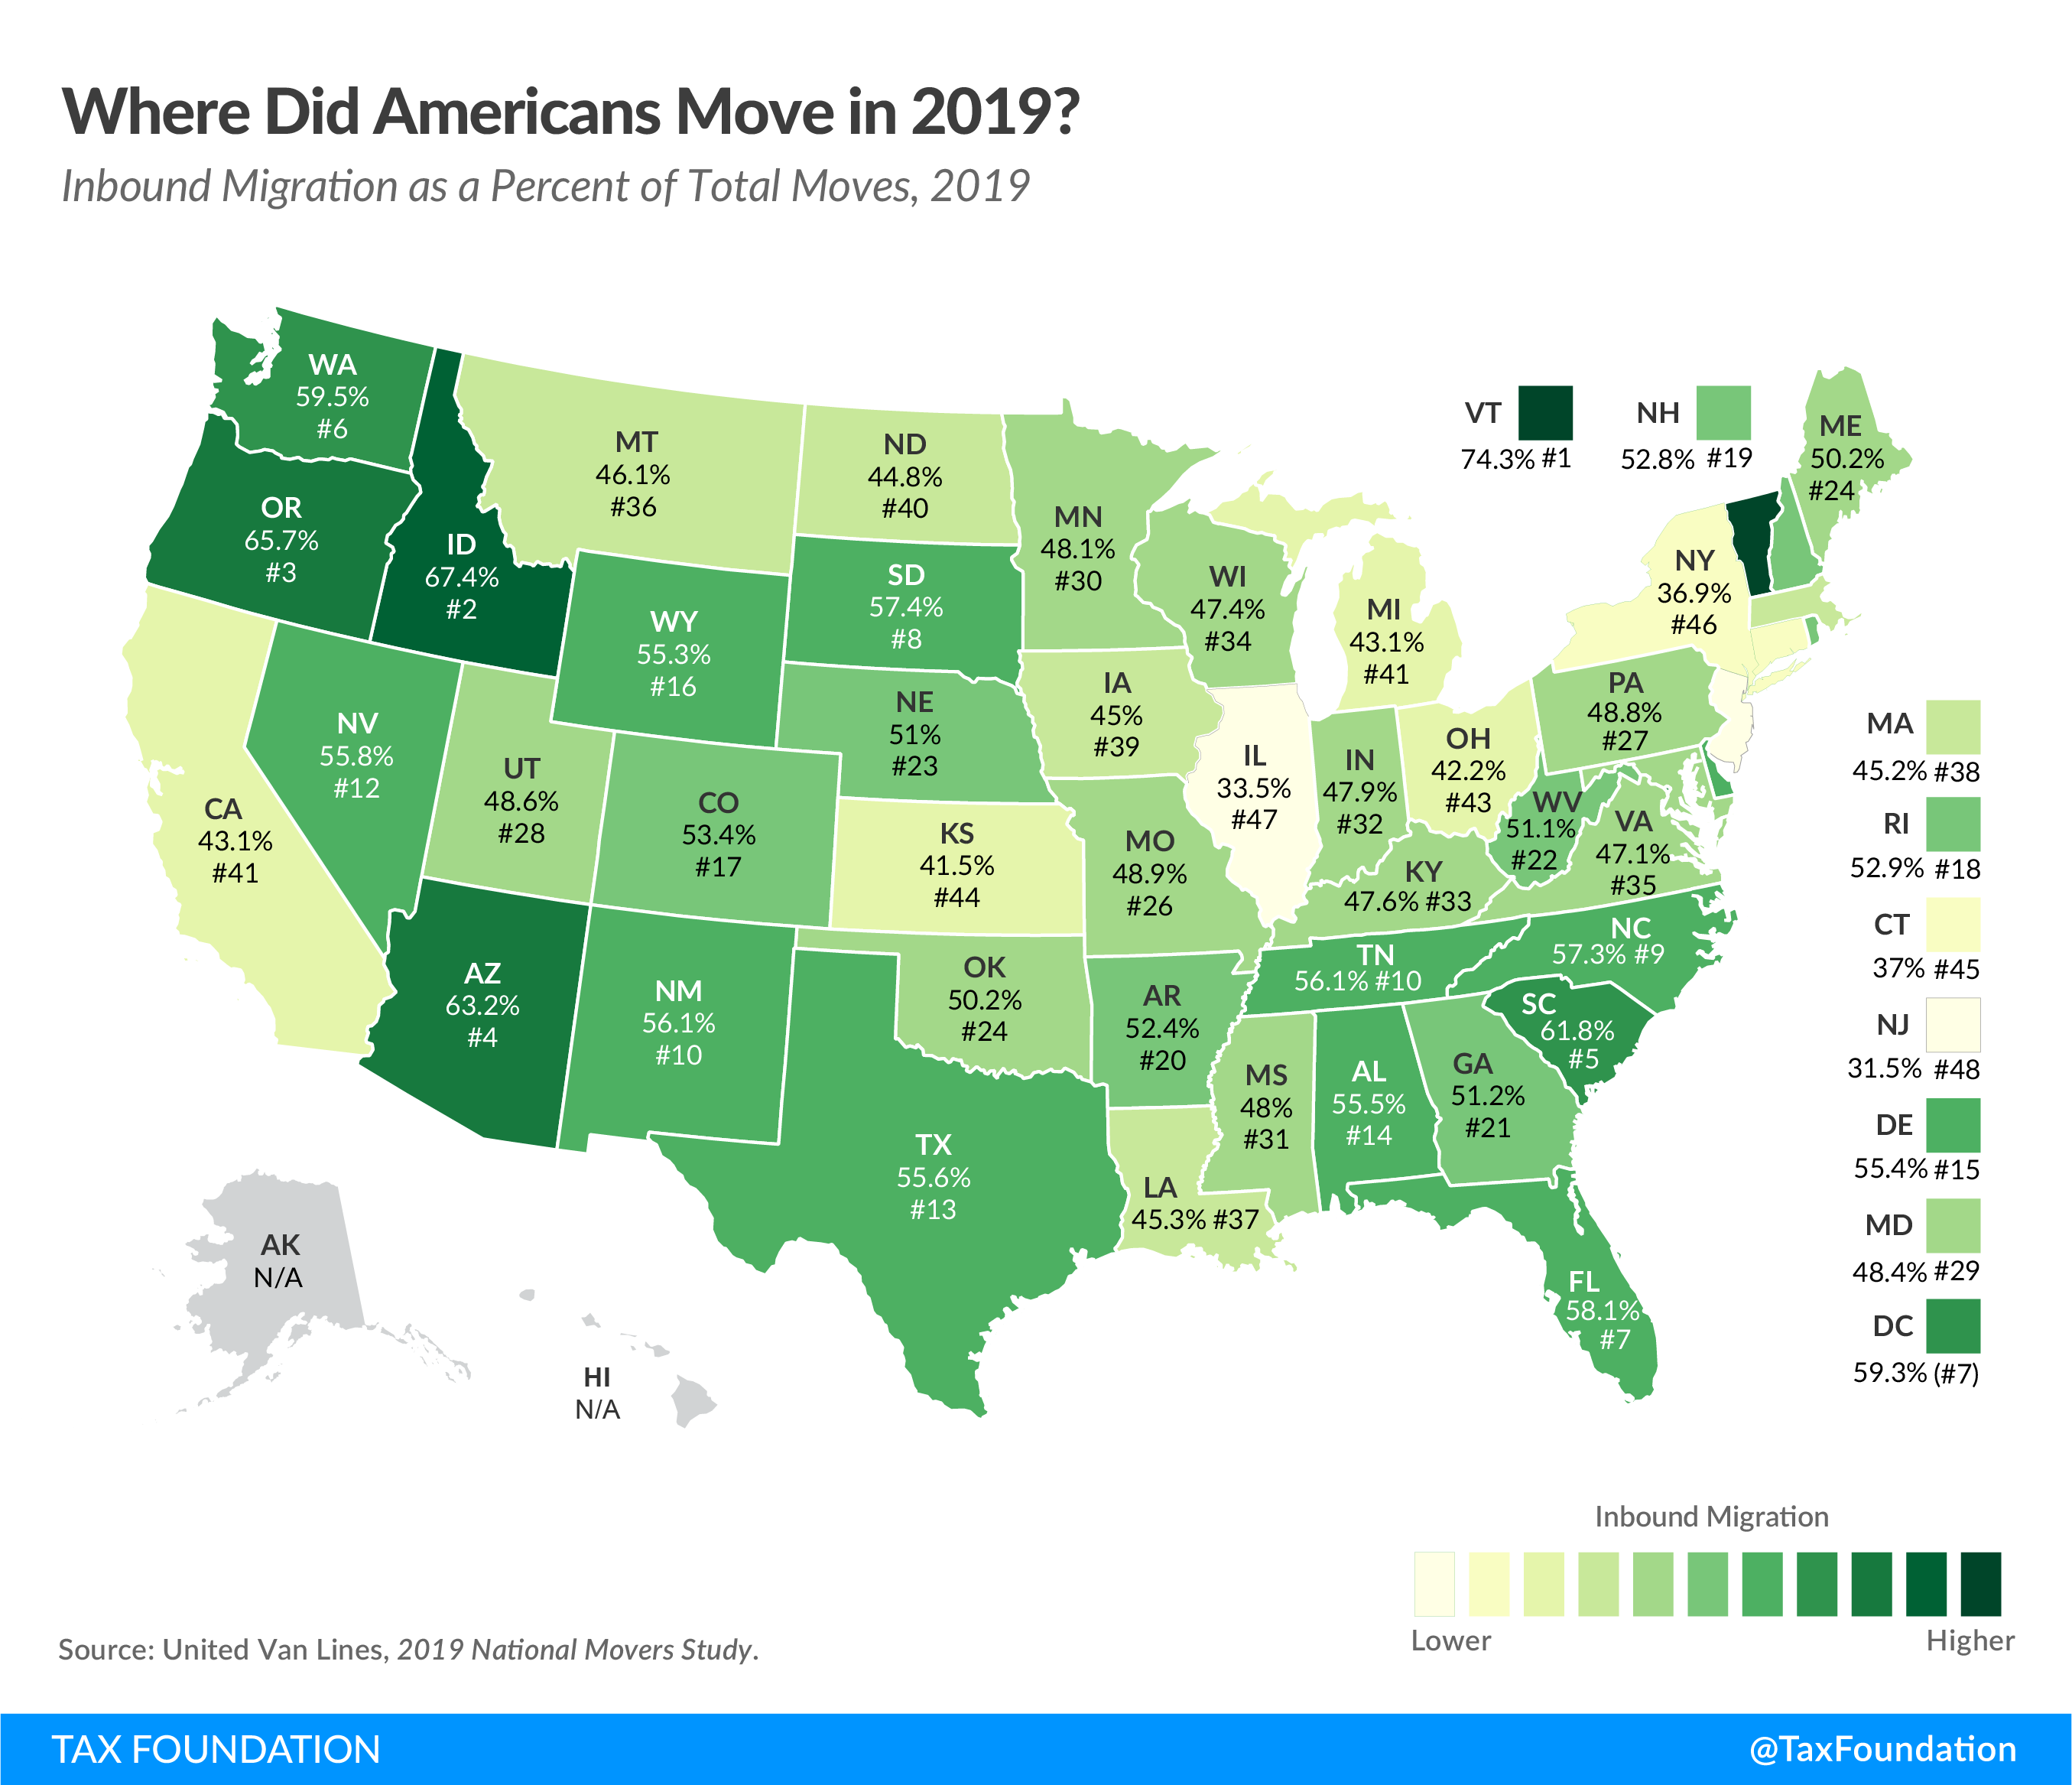 Where did Americans move to which states the most?